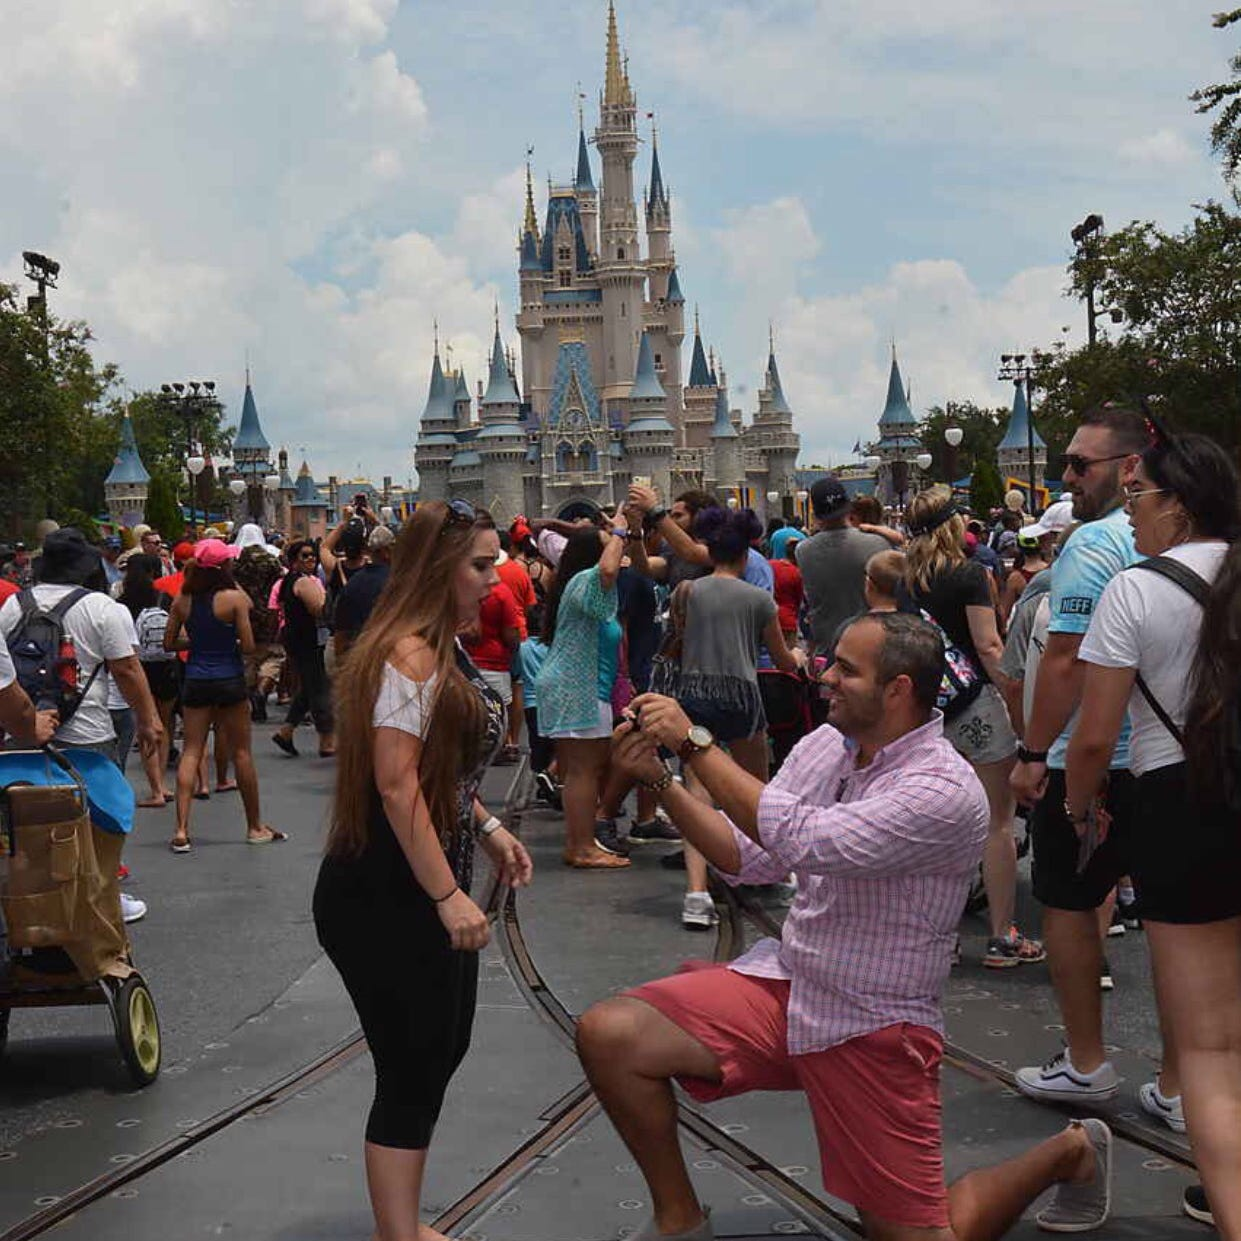 Miguel Morrobel proposed to Abby at Disneyland.